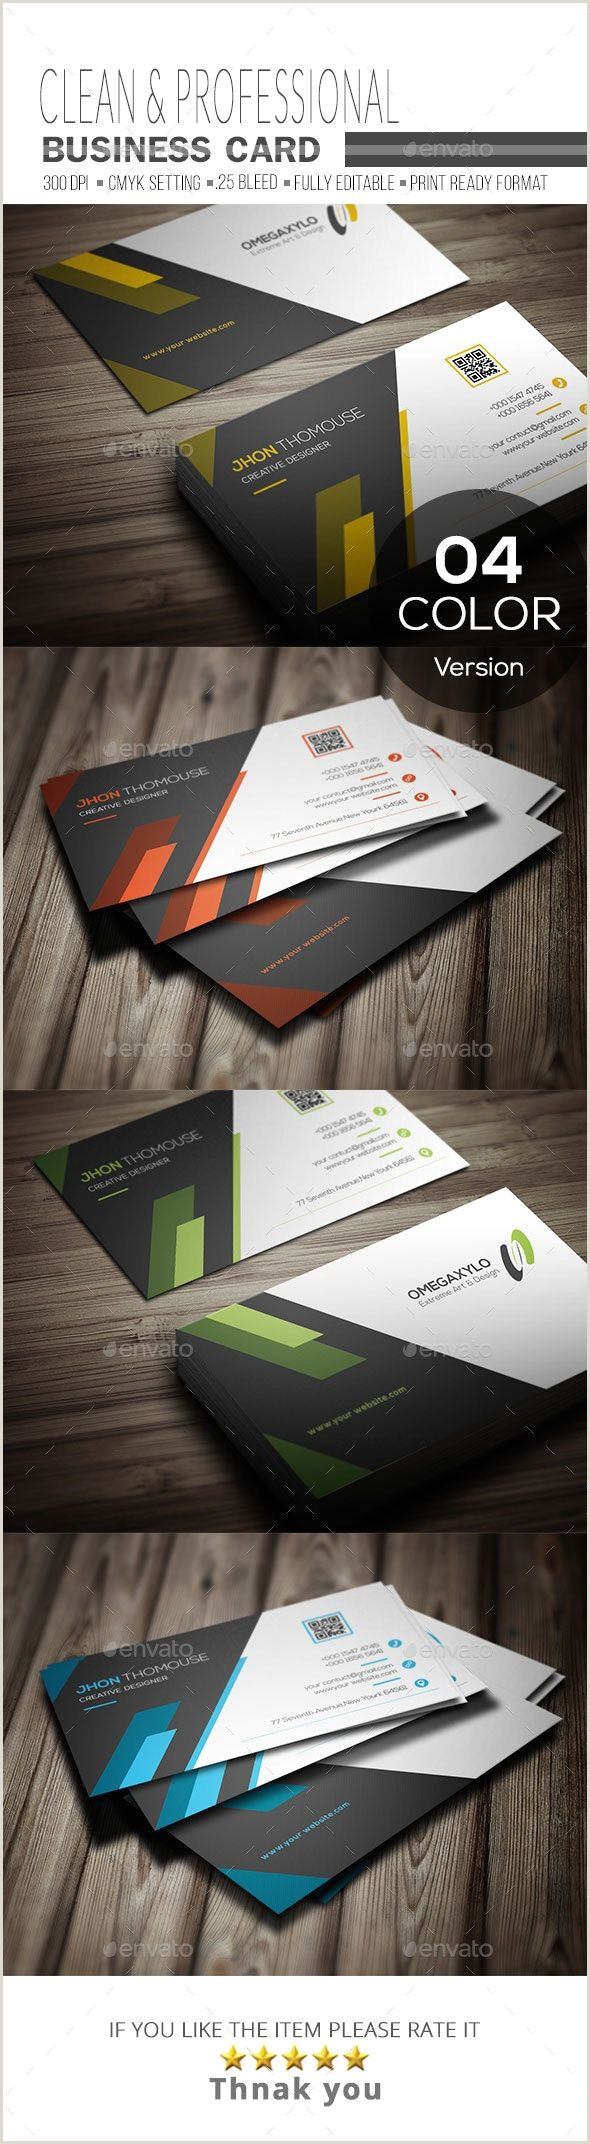 How To Format A Business Card Business Card